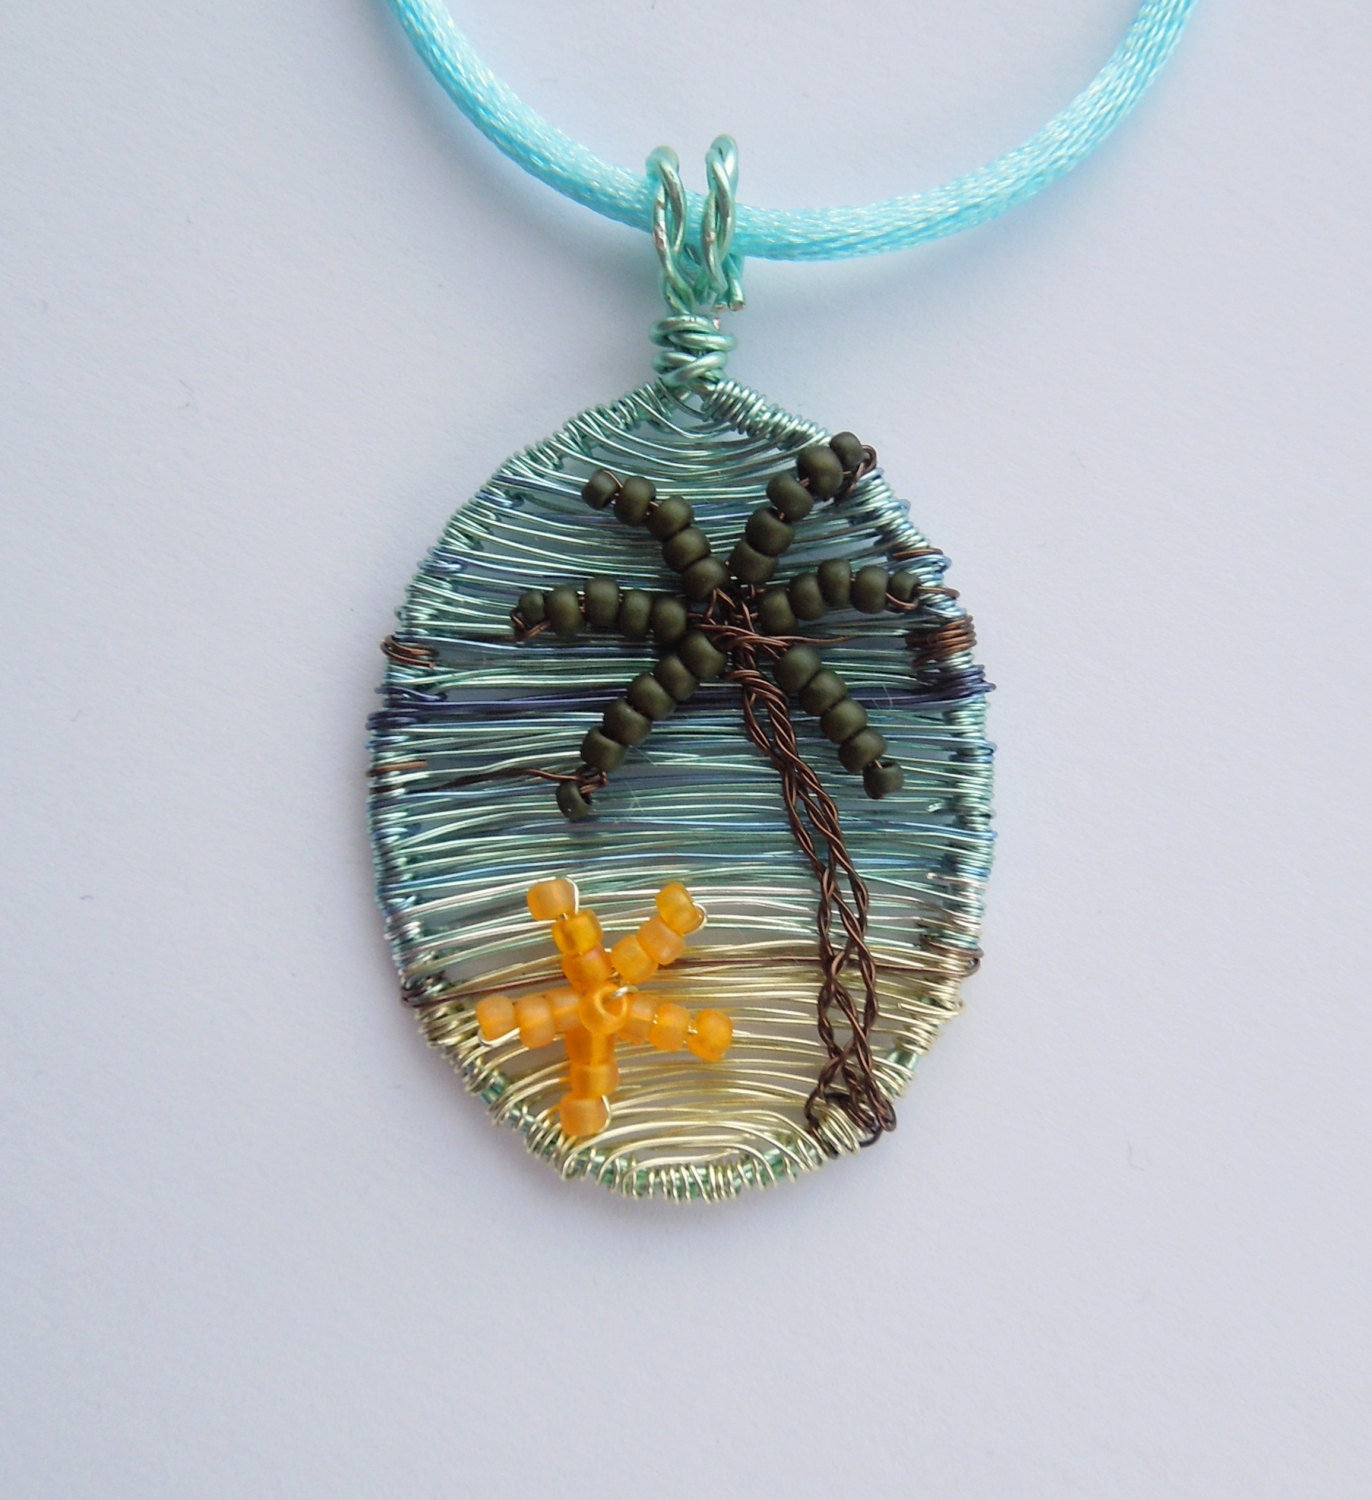 palmtree jewelry palm tree pendant tropical pendant palm tree jewelry 5665